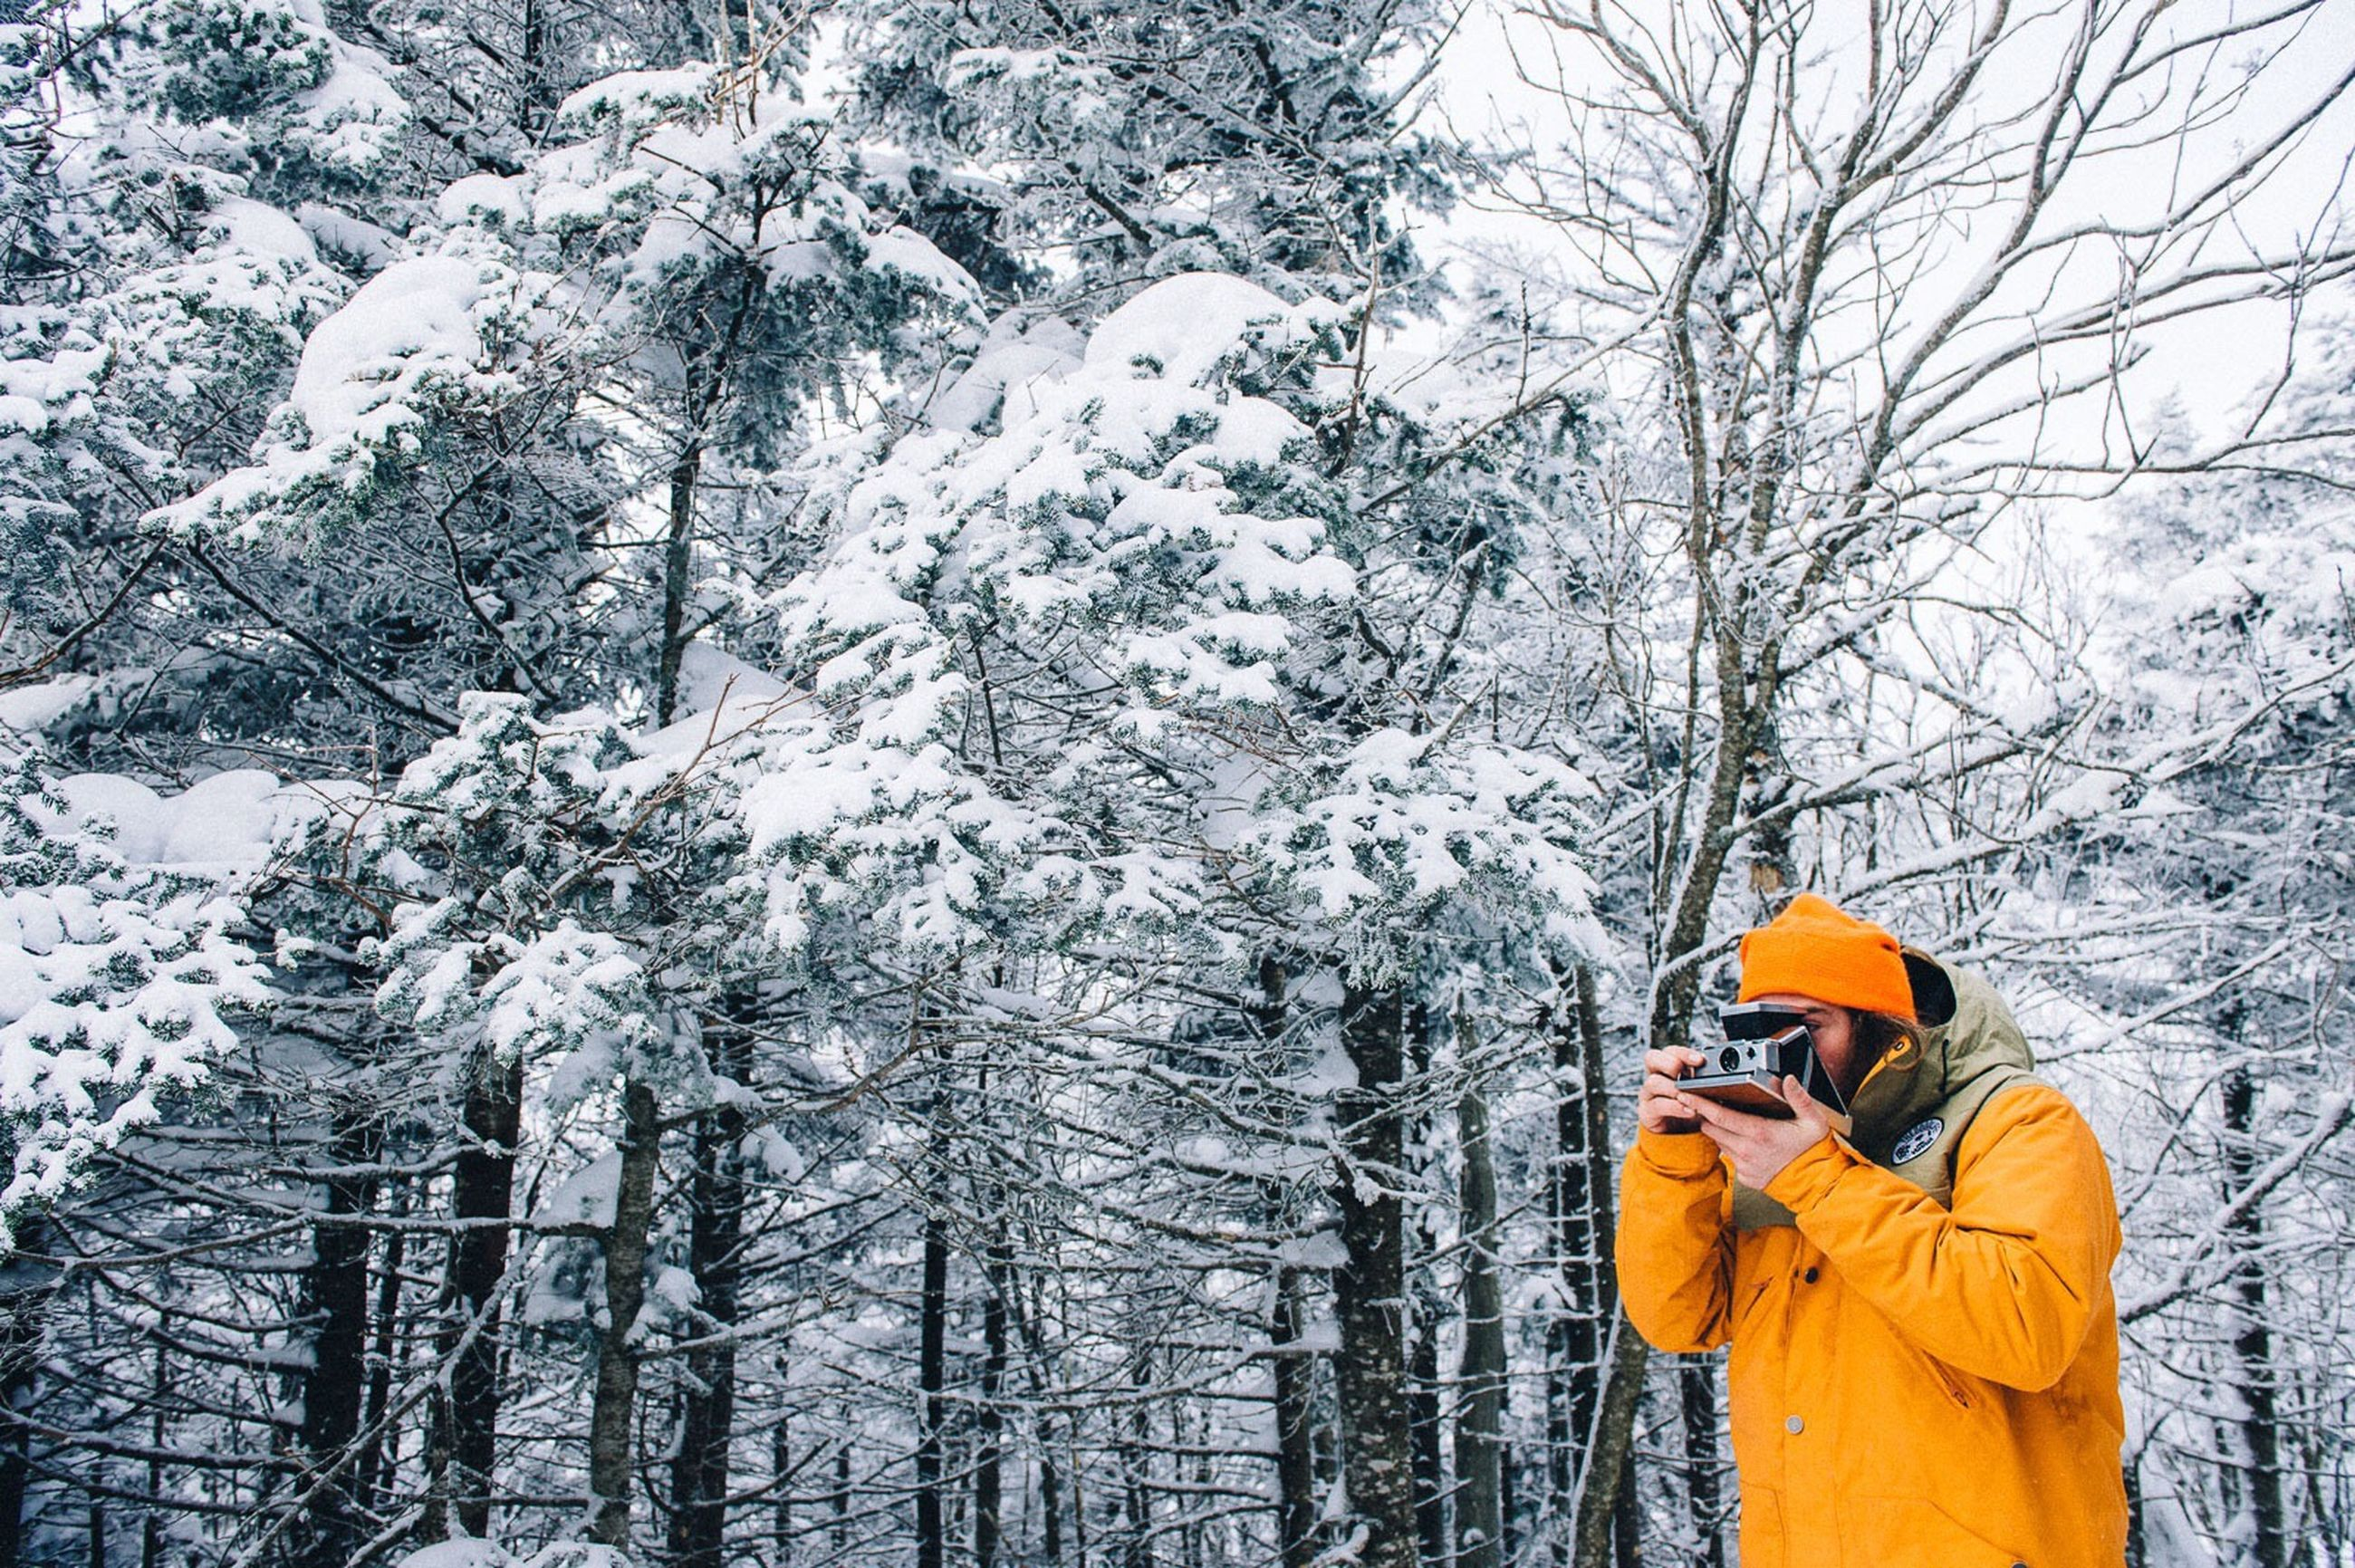 winter, cold temperature, tree, snow, manual worker, men, one person, headwear, industry, adults only, warm clothing, nature, one man only, occupation, only men, working, people, adult, snowing, protective workwear, engineer, outdoors, hardhat, day